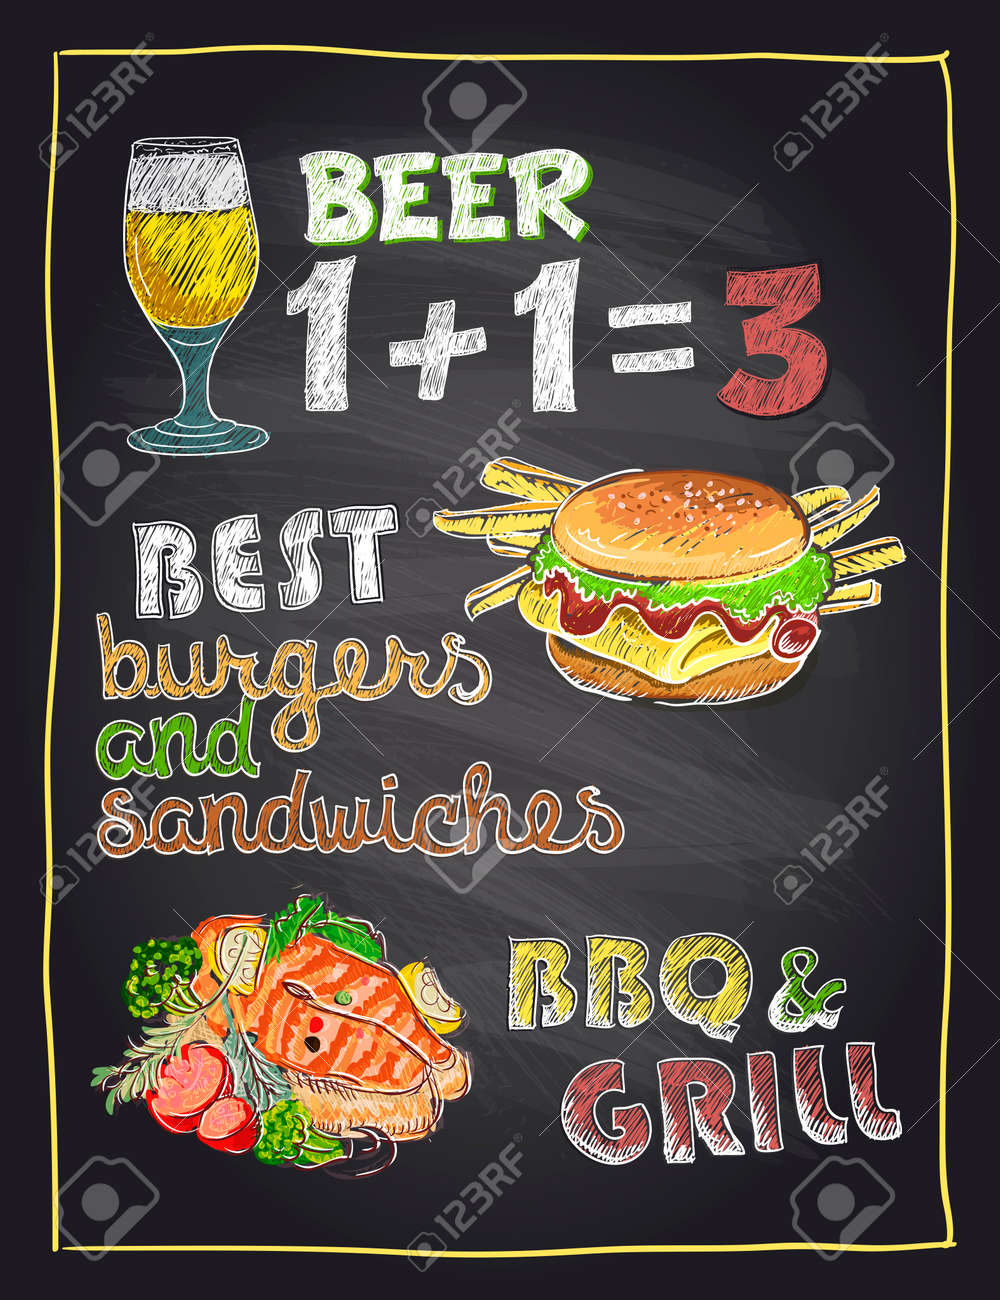 Chalkboard Hand Drawn Menu Sign With Beer Burger And Grilled